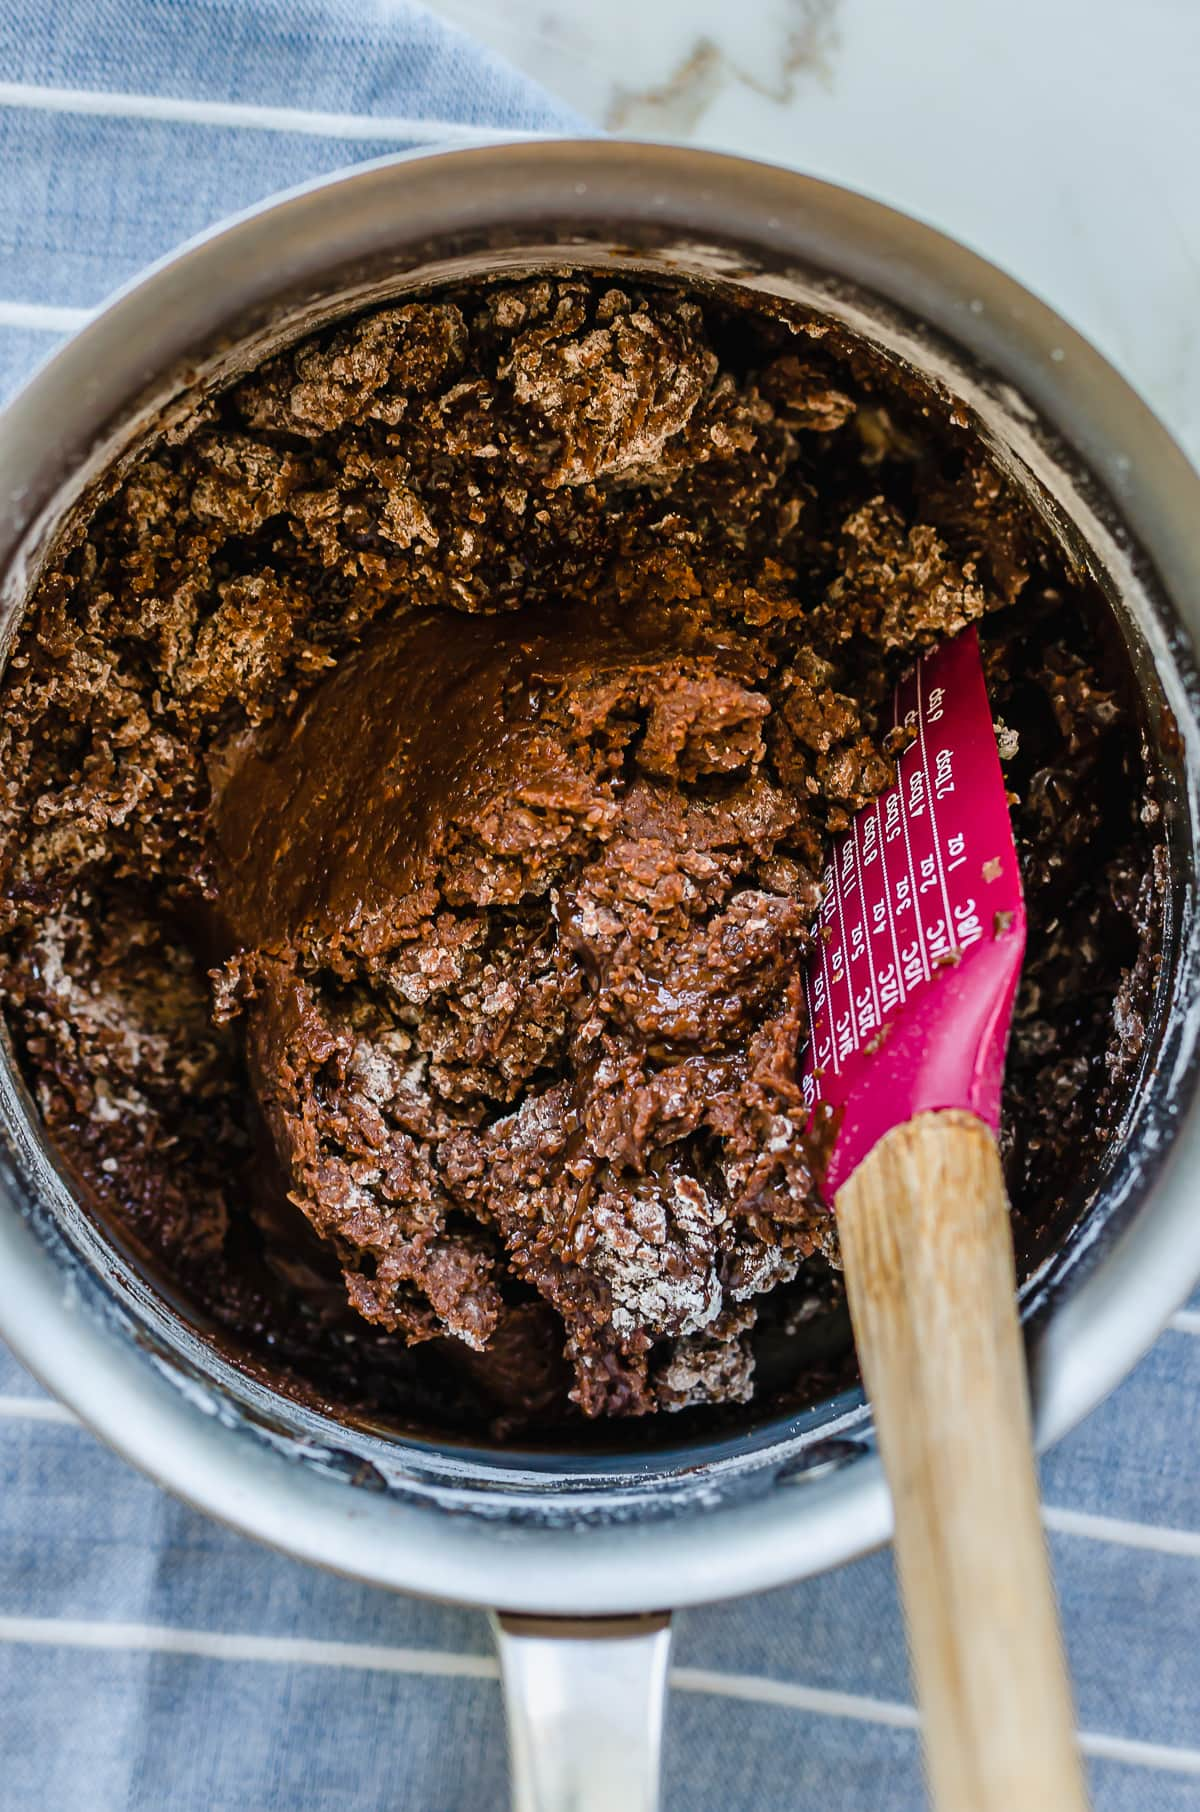 Chocolate cookie batter being mixed with a rubber spatula in a saucepan.